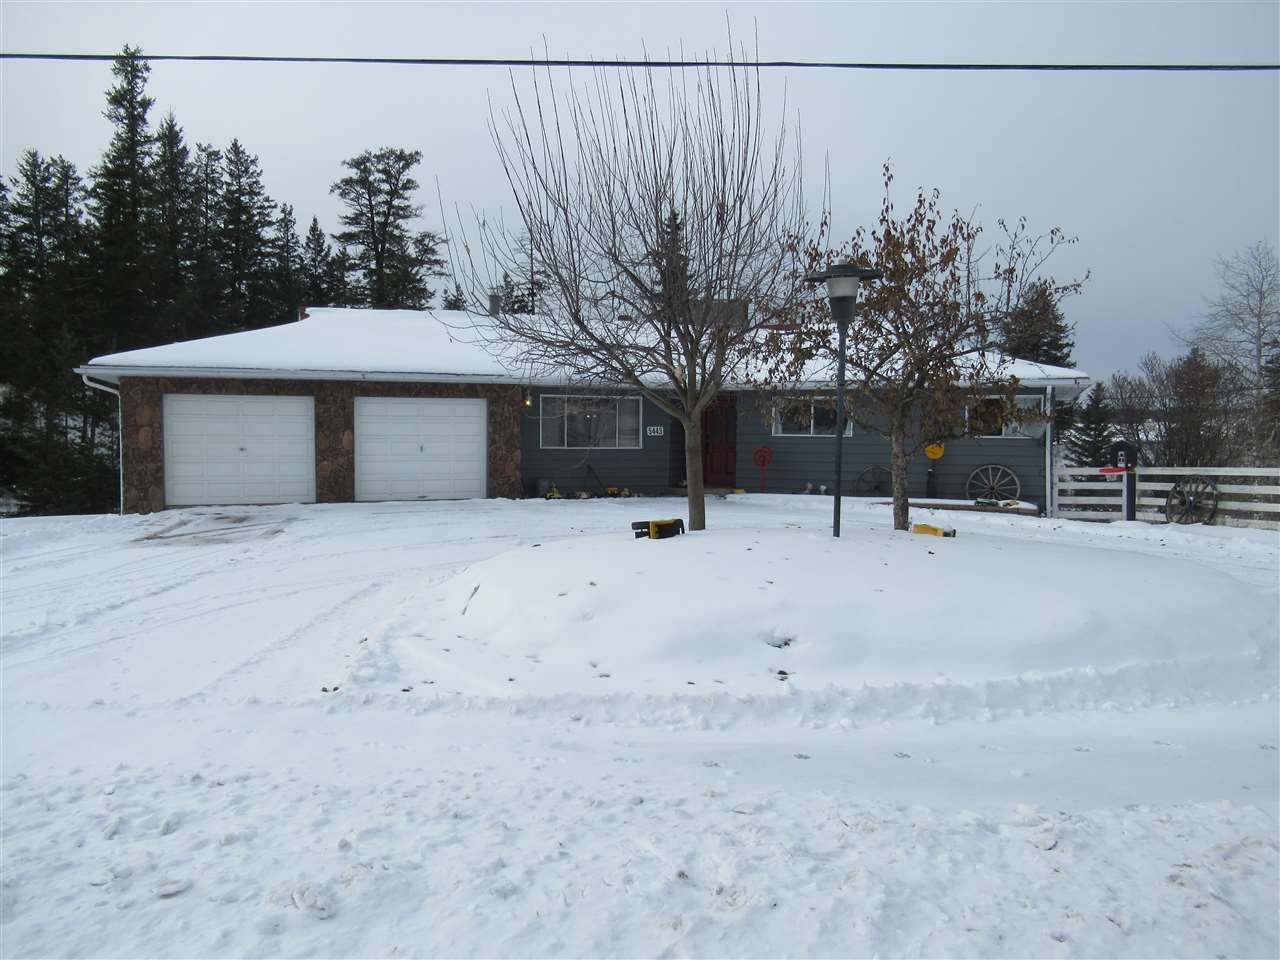 Main Photo: 5443 105 MILE LAKE ACCESS NO 2 Road in 100 Mile House: 108 Ranch House for sale (100 Mile House (Zone 10))  : MLS®# R2518582